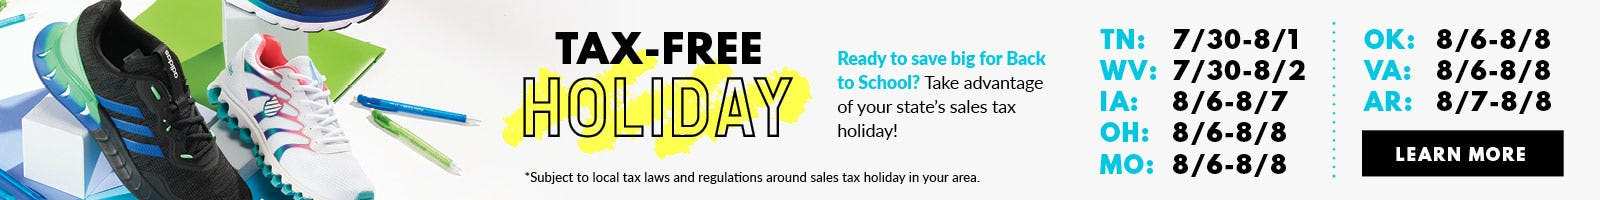 Shop Back to School shoes during your state's local Tax-Free Holiday!